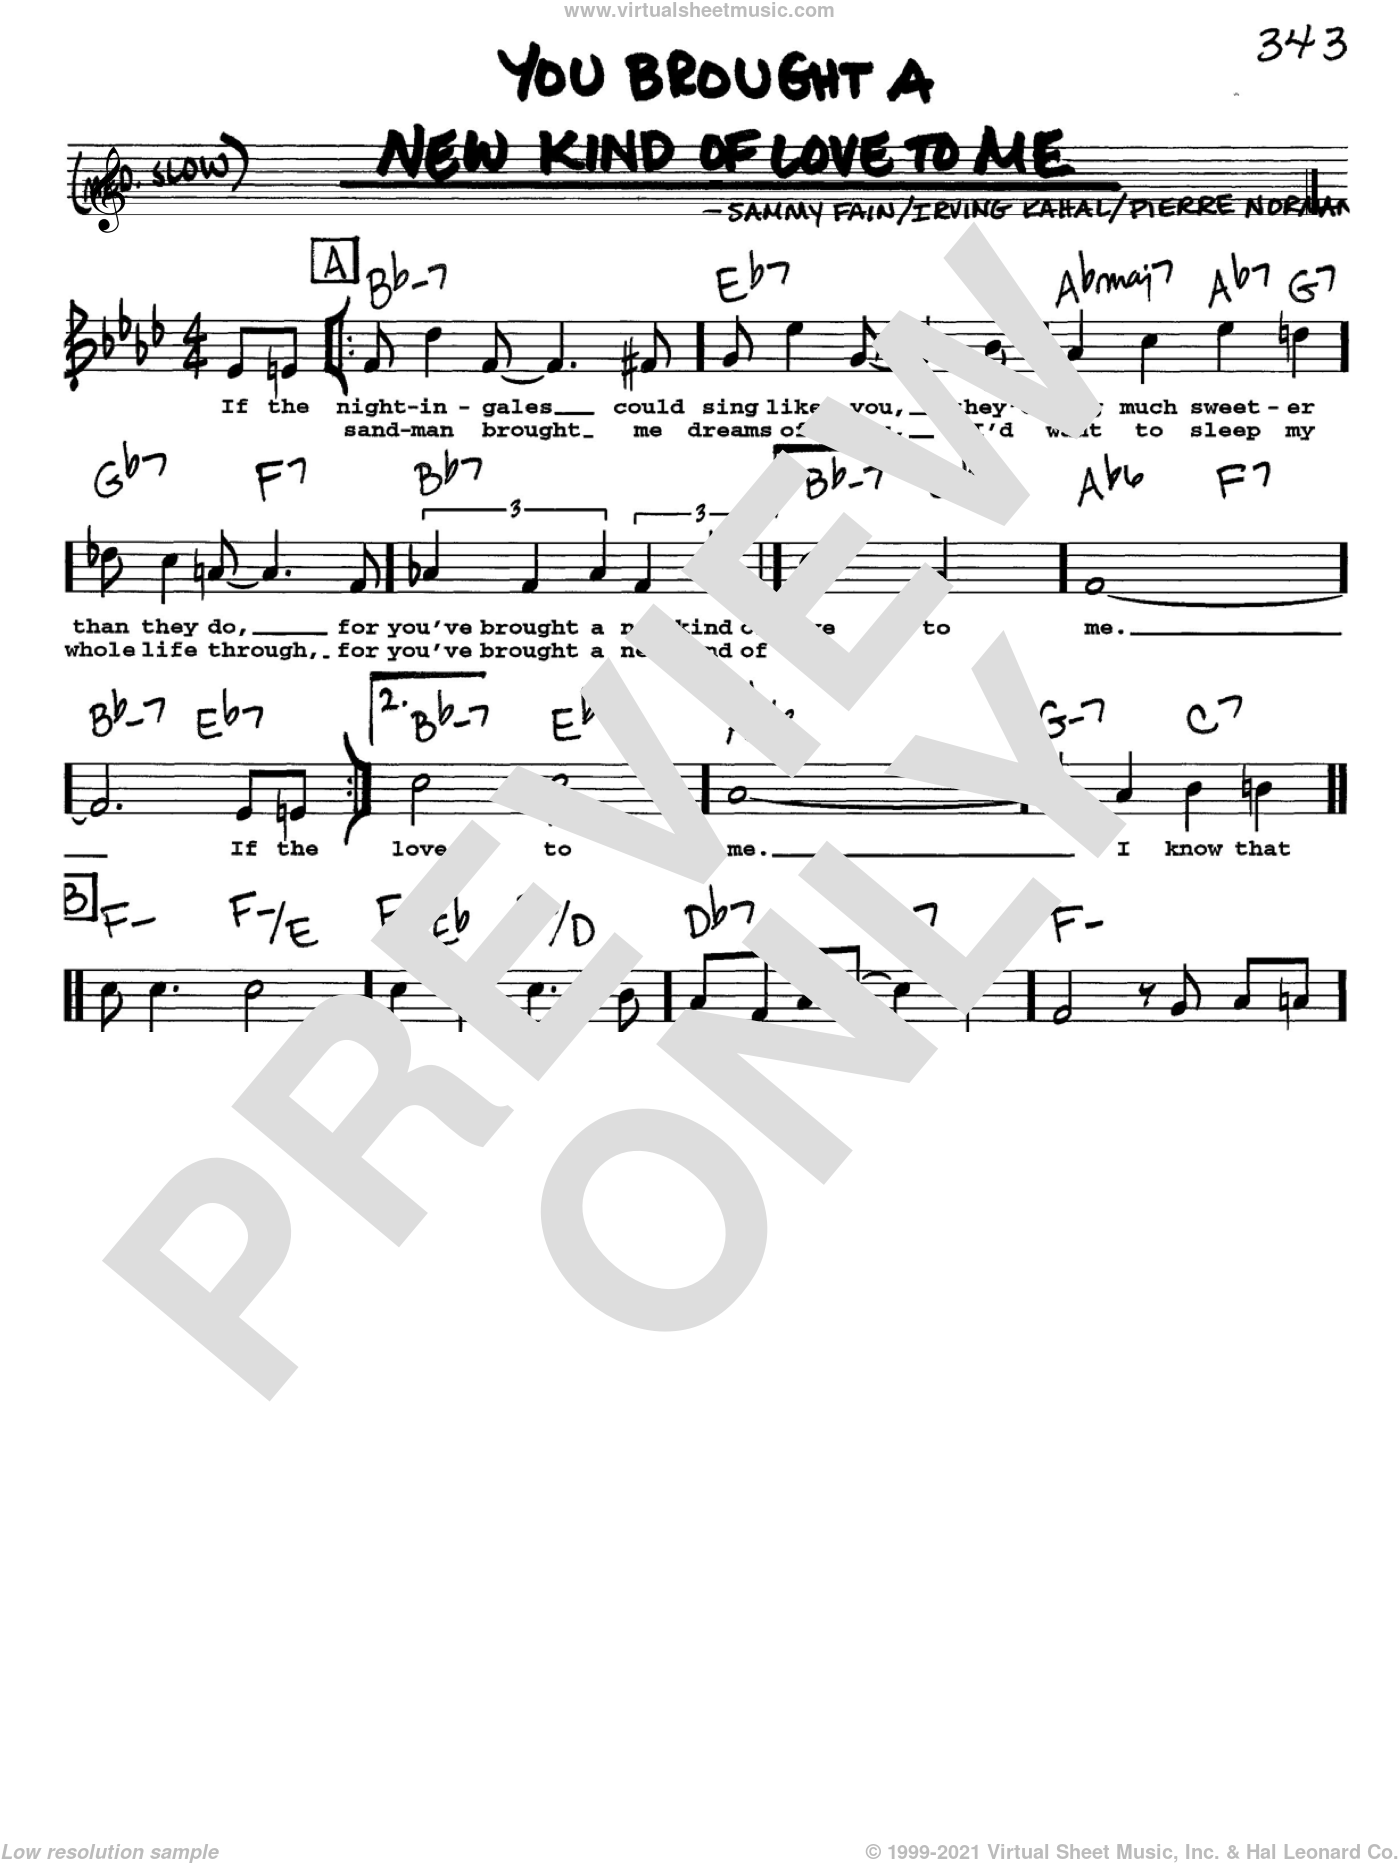 You Brought A New Kind Of Love To Me sheet music for voice and other instruments (Vocal Volume 1) by Sammy Fain, Frank Sinatra, Irving Kahal and Pierre Norman. Score Image Preview.